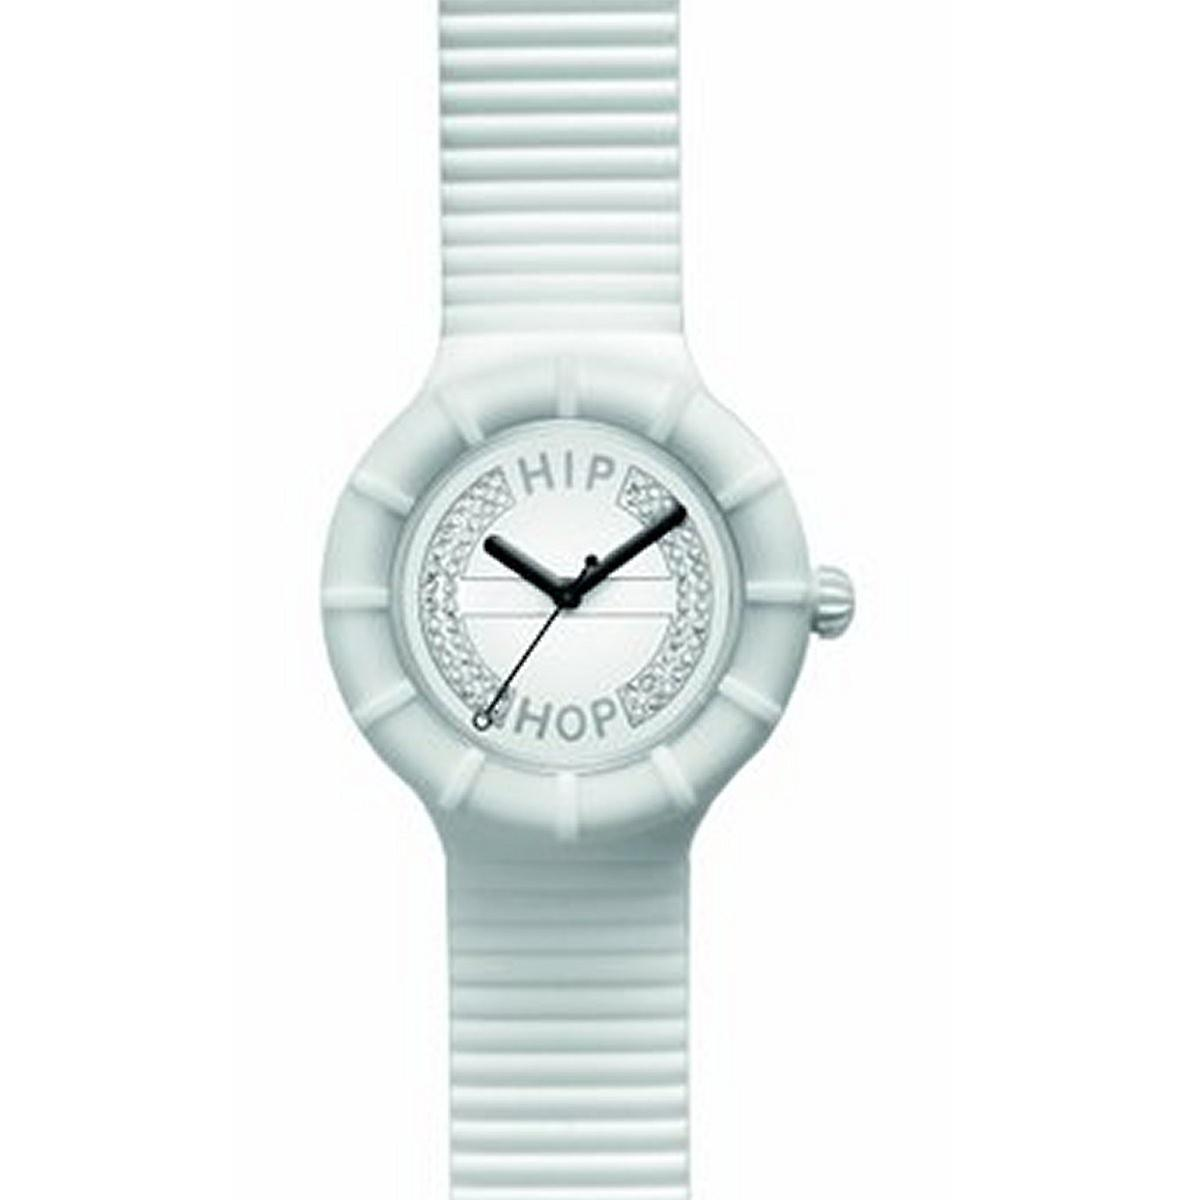 Hip hop watch wrist watch silicone watch crystal 40 mm HWU0163 bianco